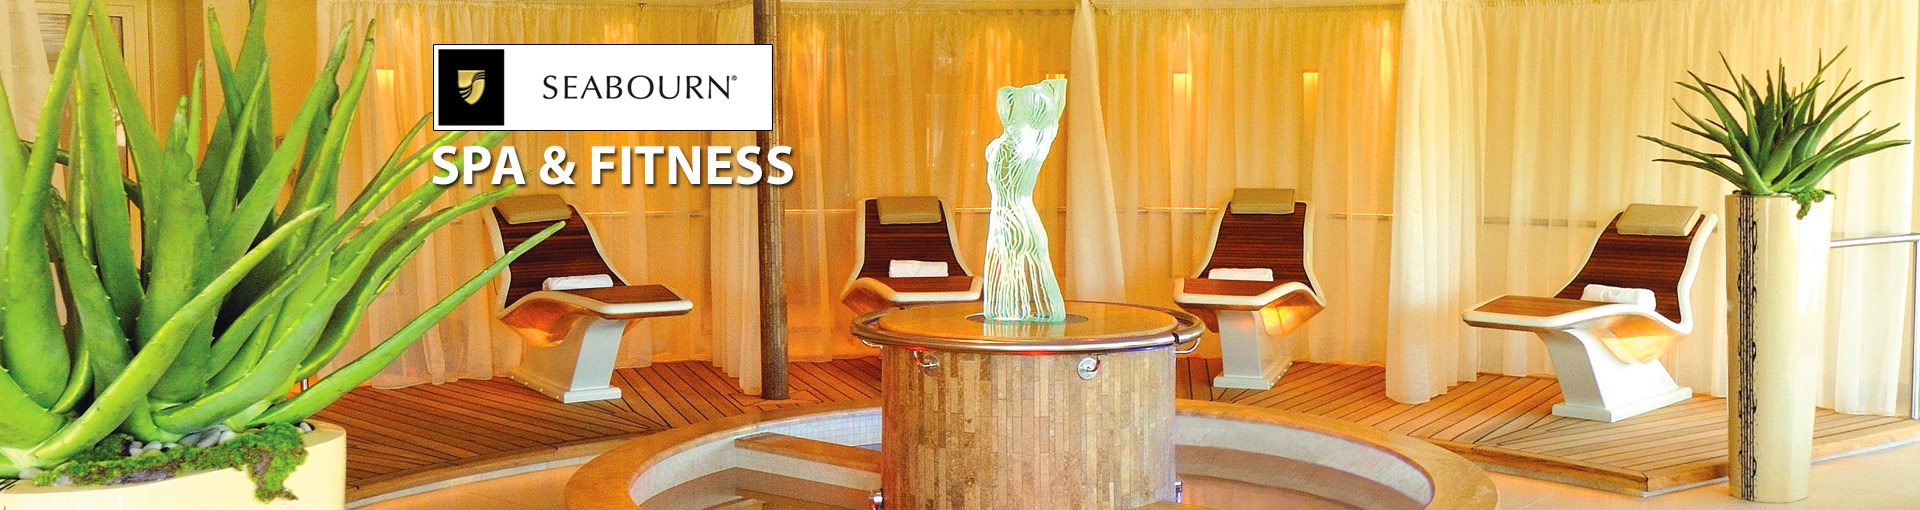 Seabourn Cruise Line Spa & Fitness